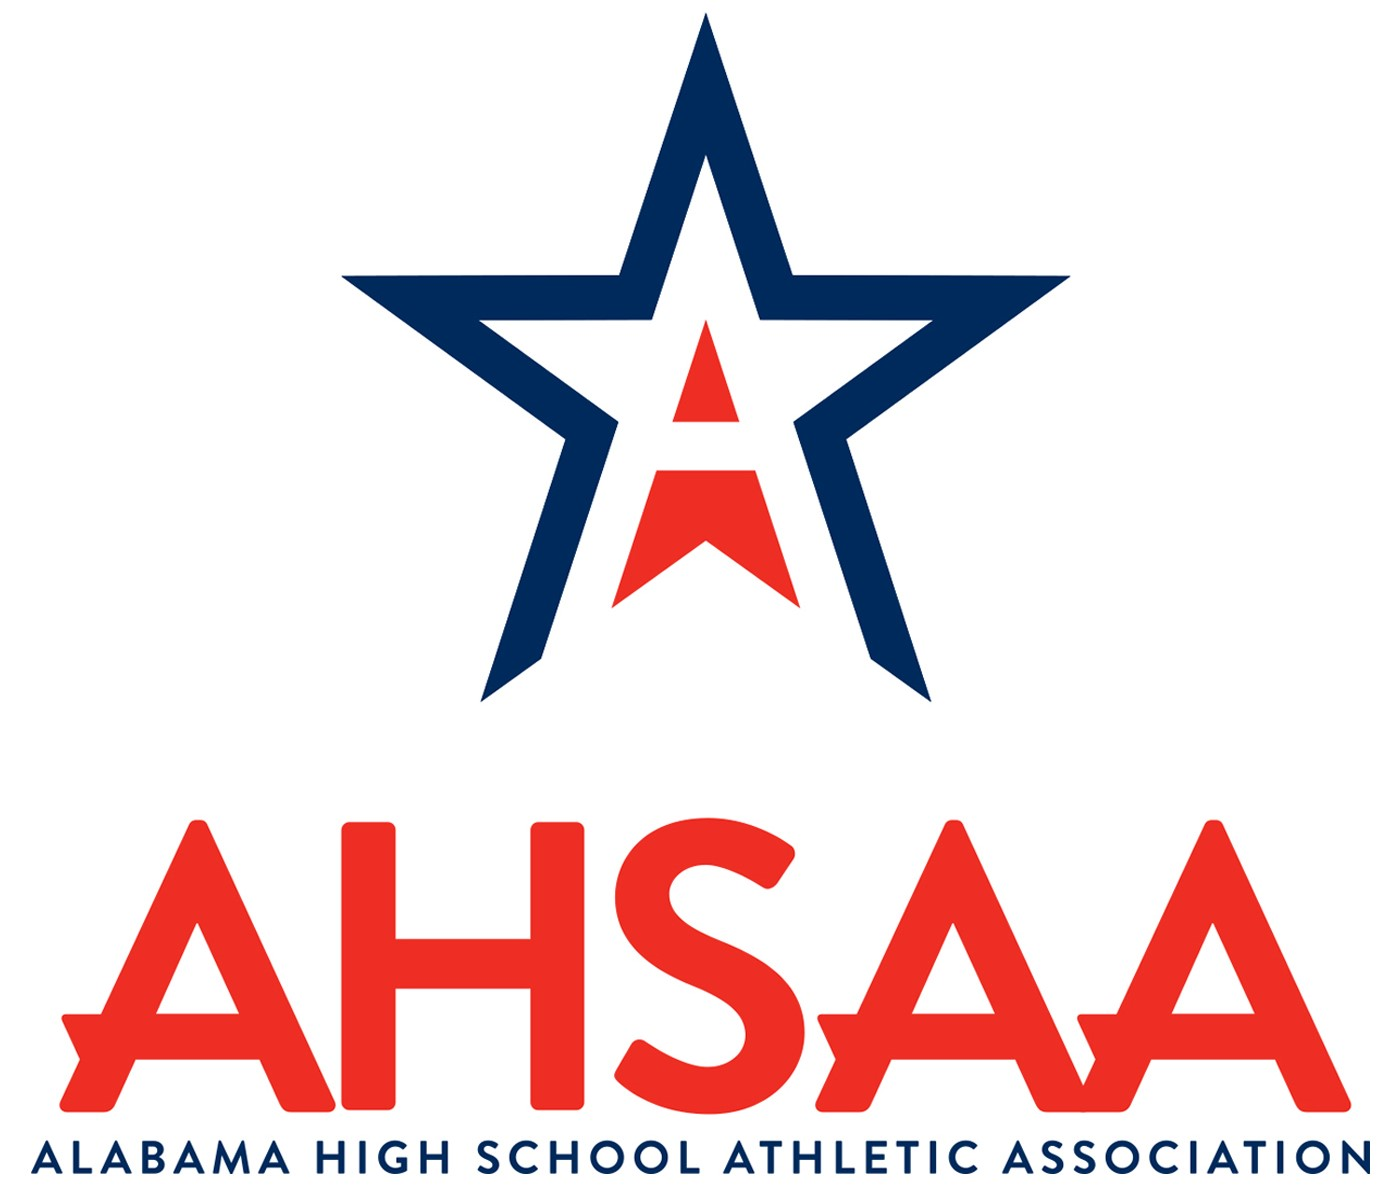 AHSAA Announces Recipients for 2020 'Making a Difference' Award